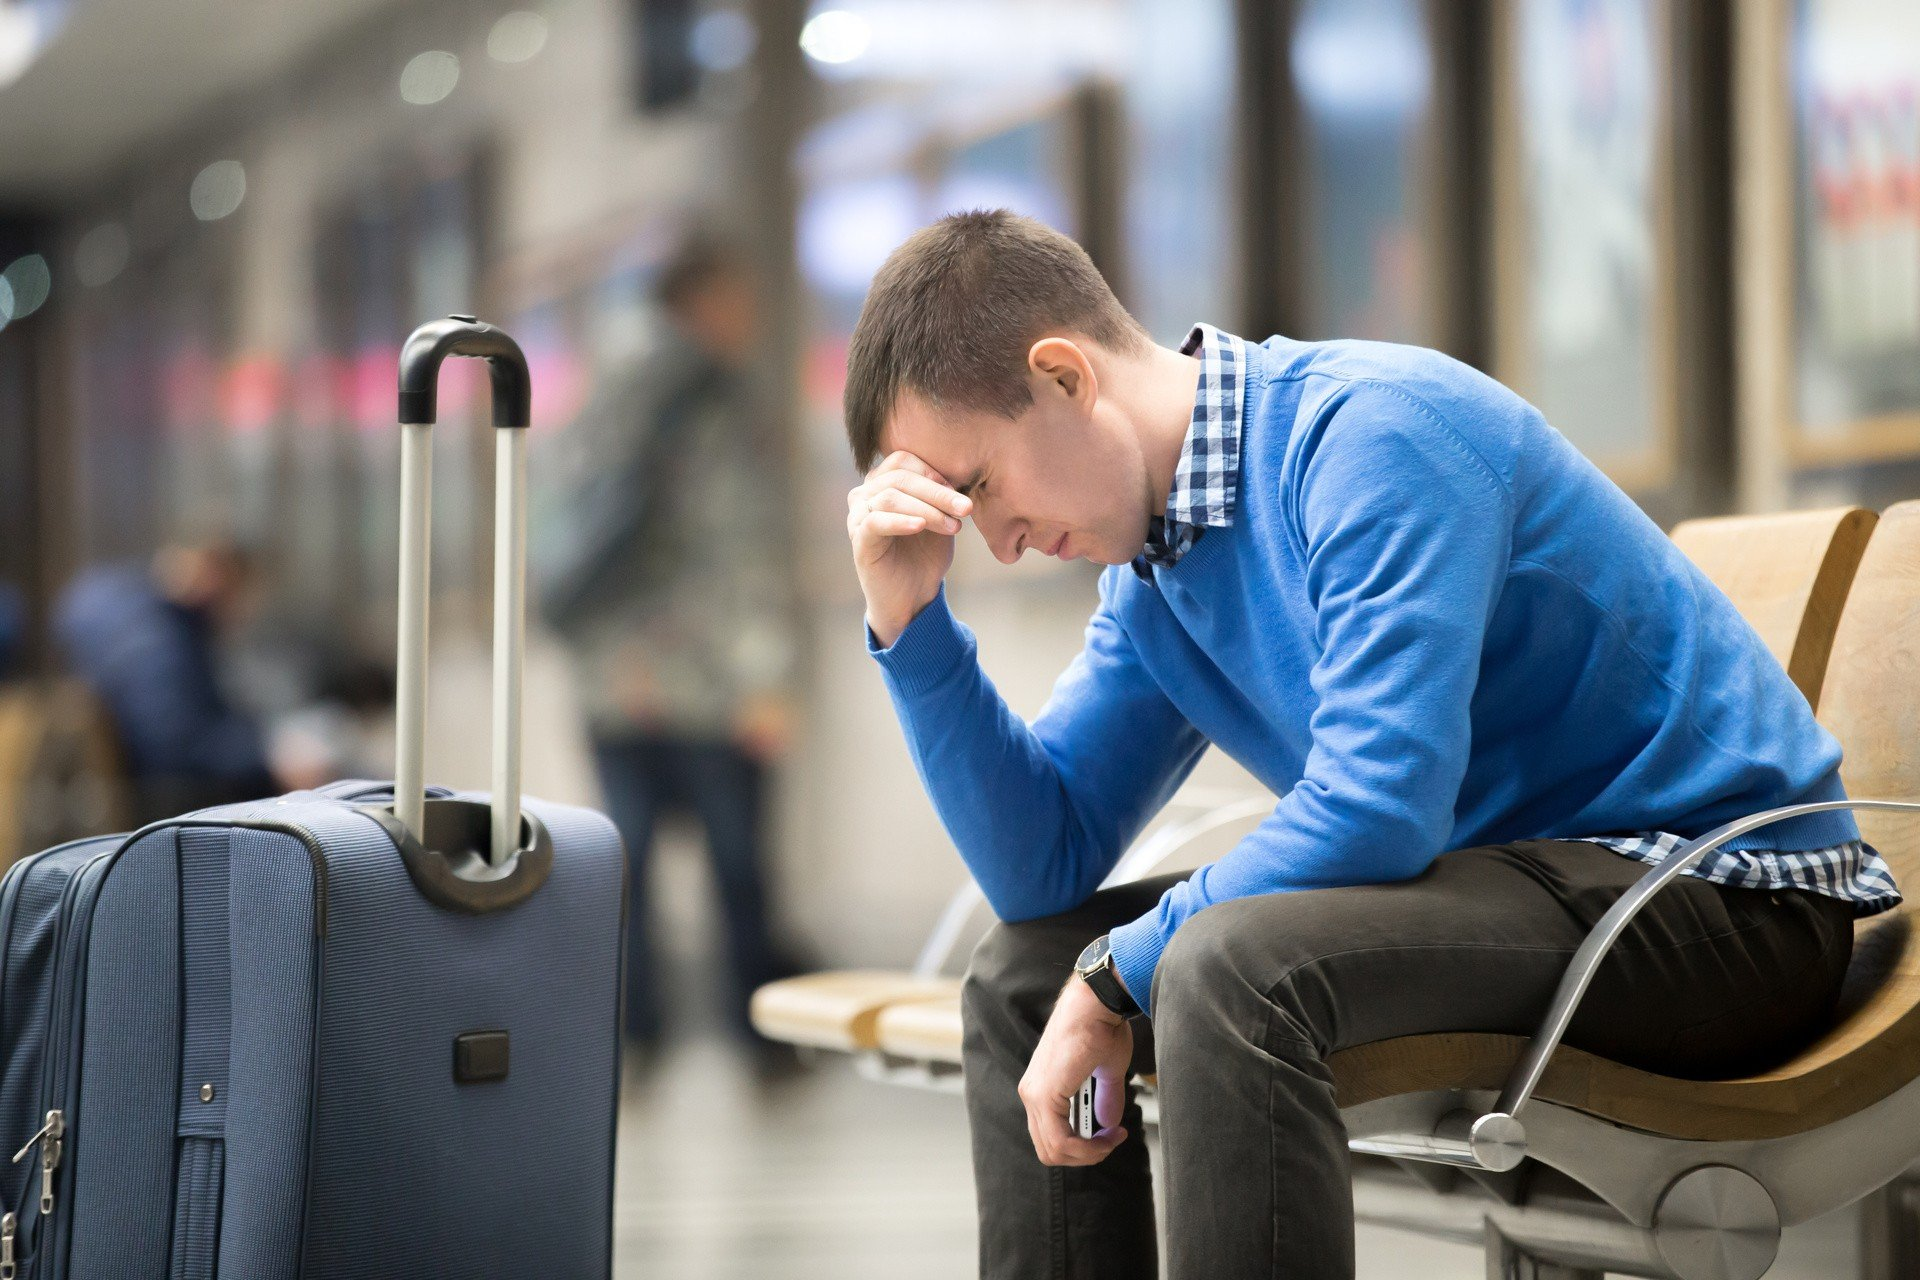 Jet-Lag-1 Travel Hacks: How to Sleep Better While You're Traveling